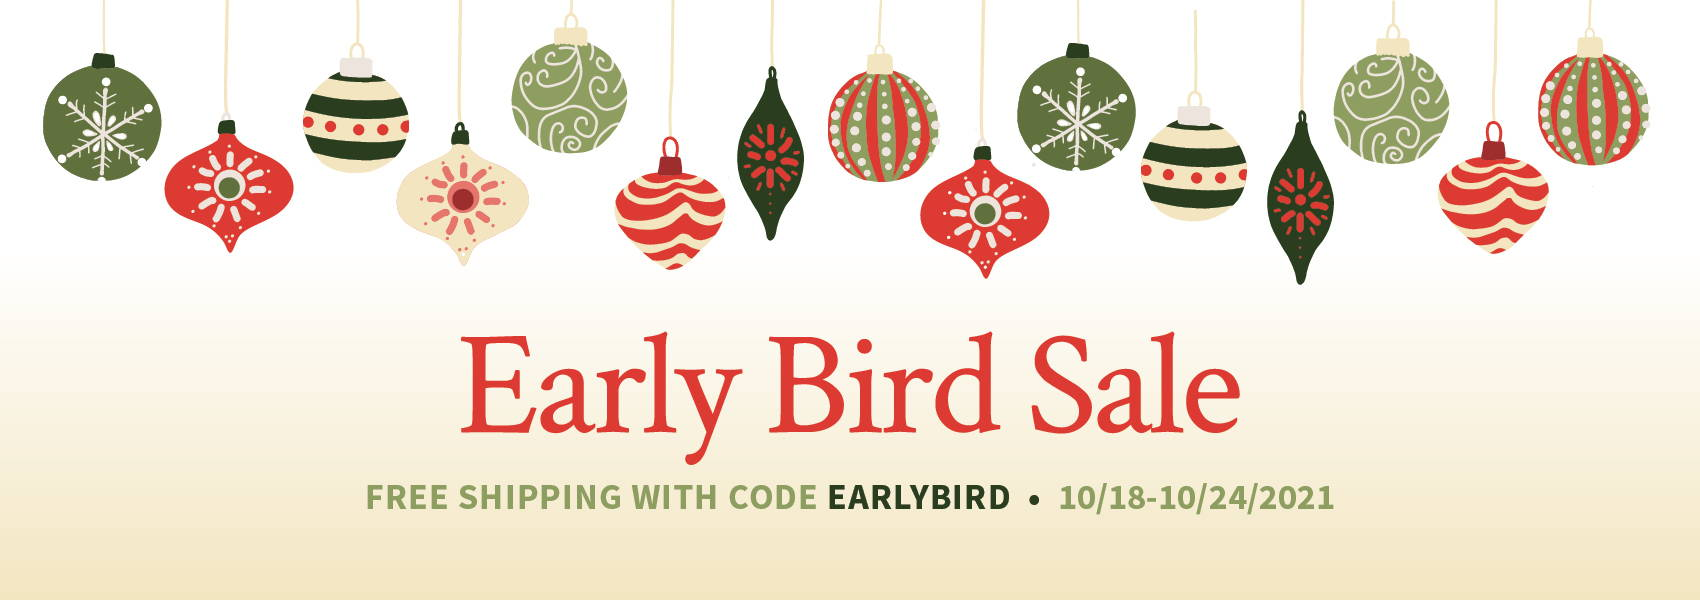 Early Bird Sale - Free Shipping with Promo Code EARLYBIRD